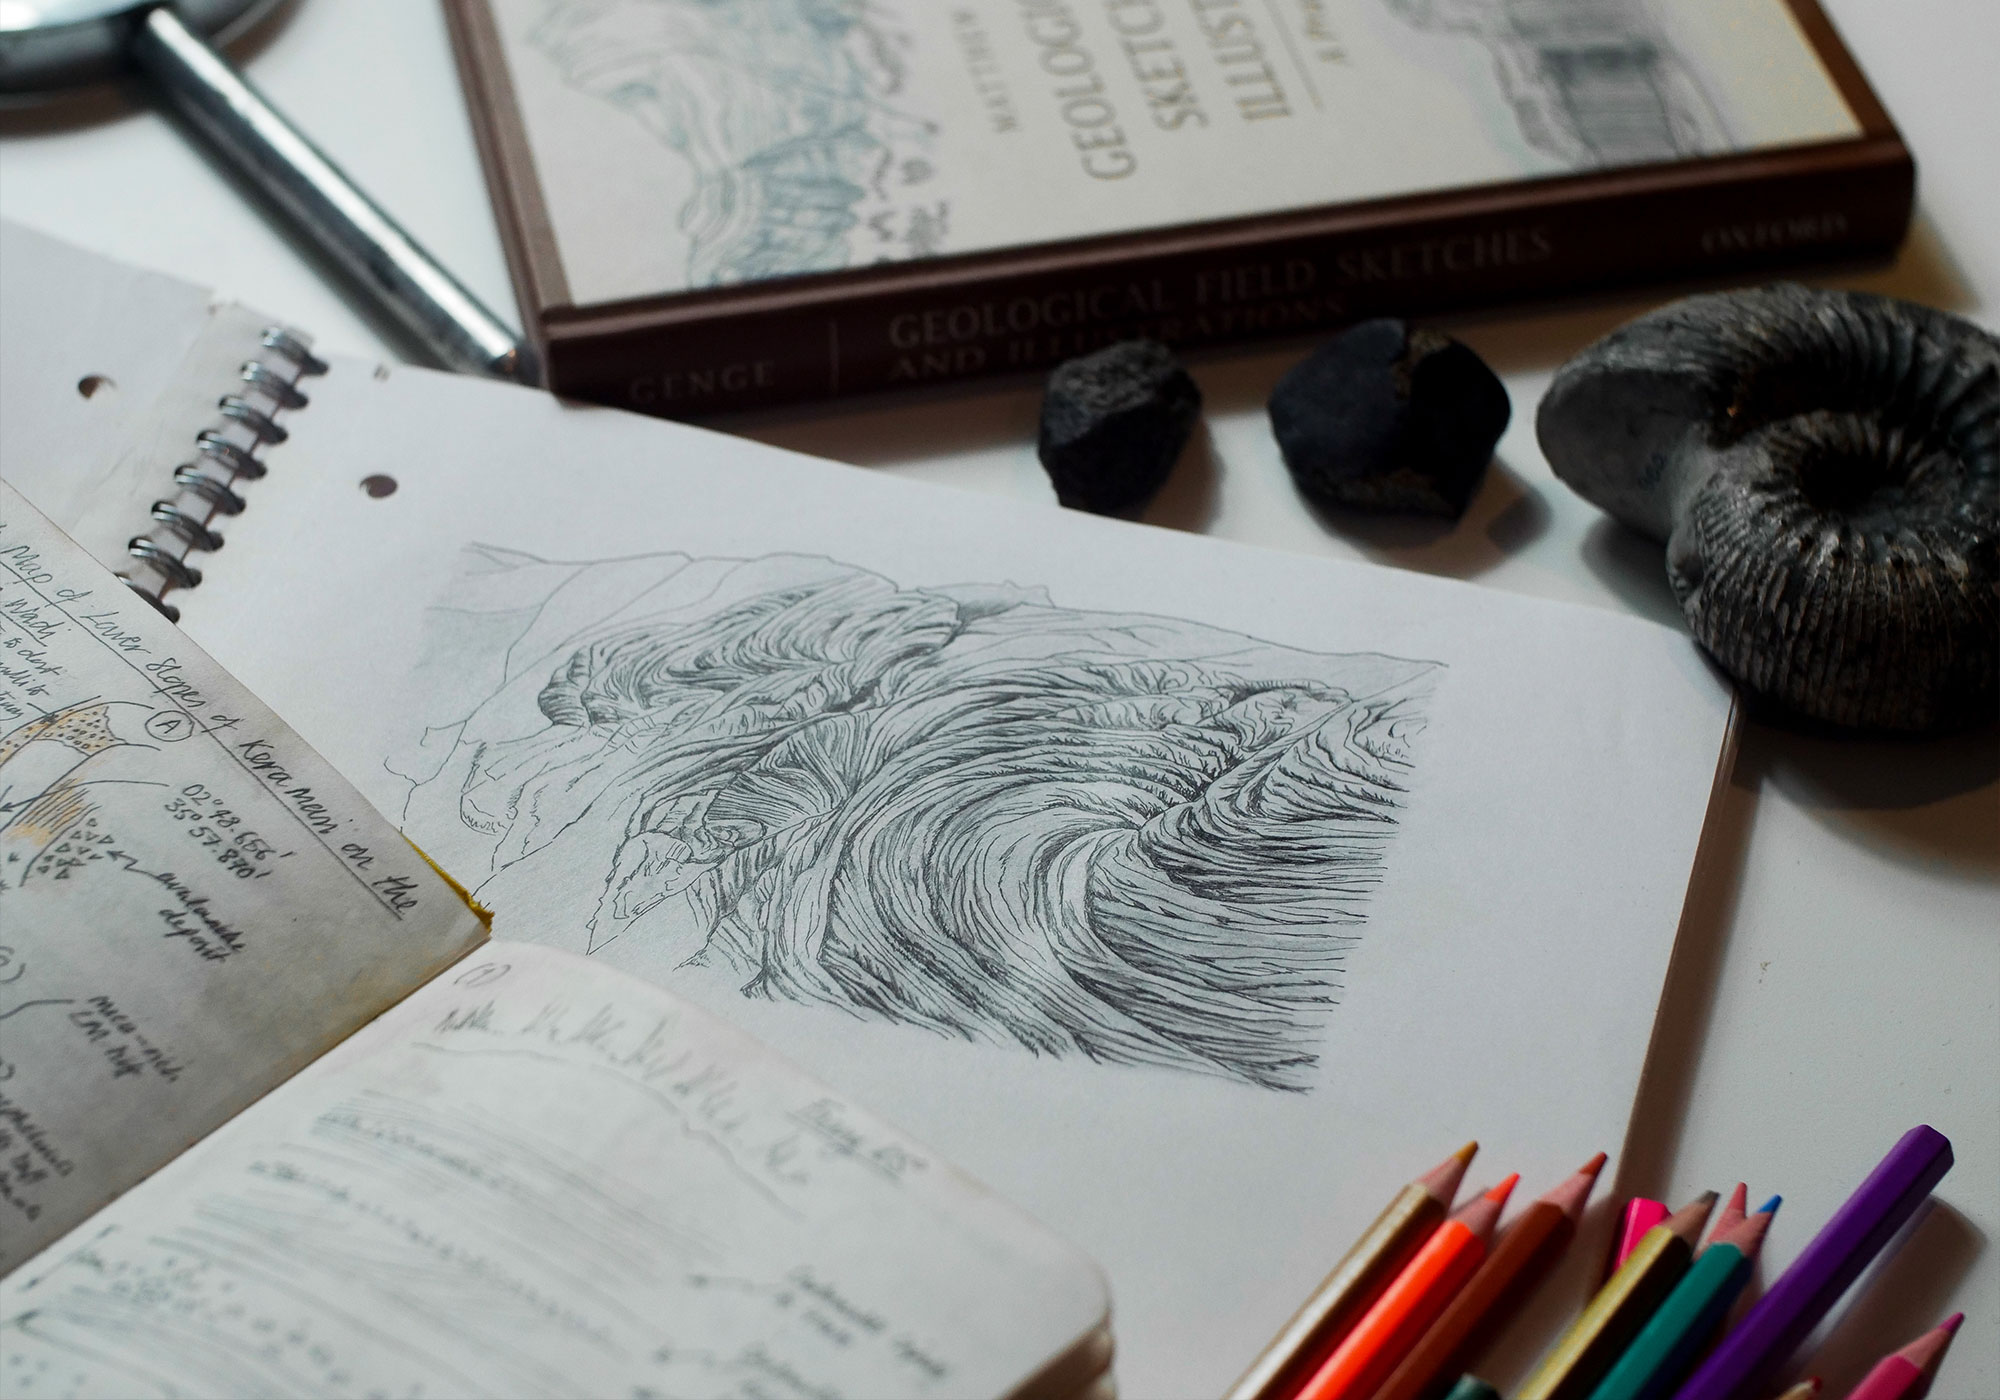 a notebook showing a sketch of a swirly rock formation called a Pahoehoe.